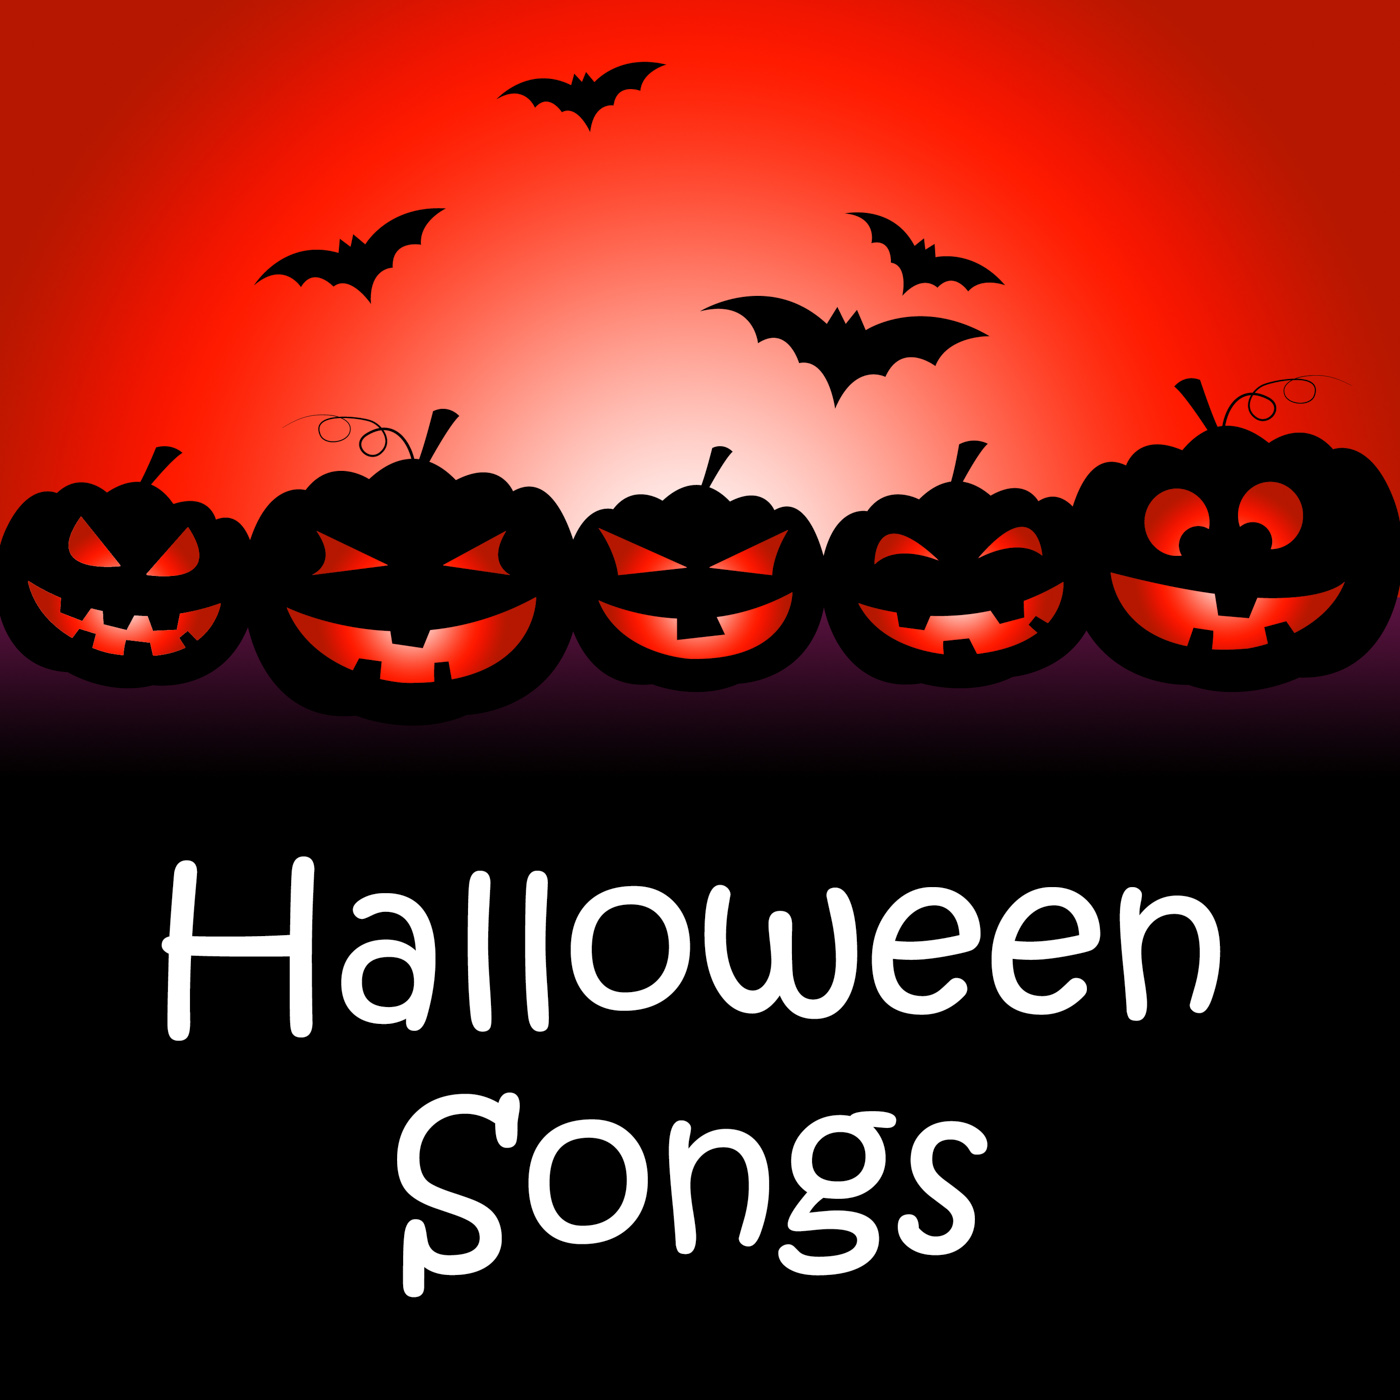 Halloween songs indicates trick or treat and autumn photo